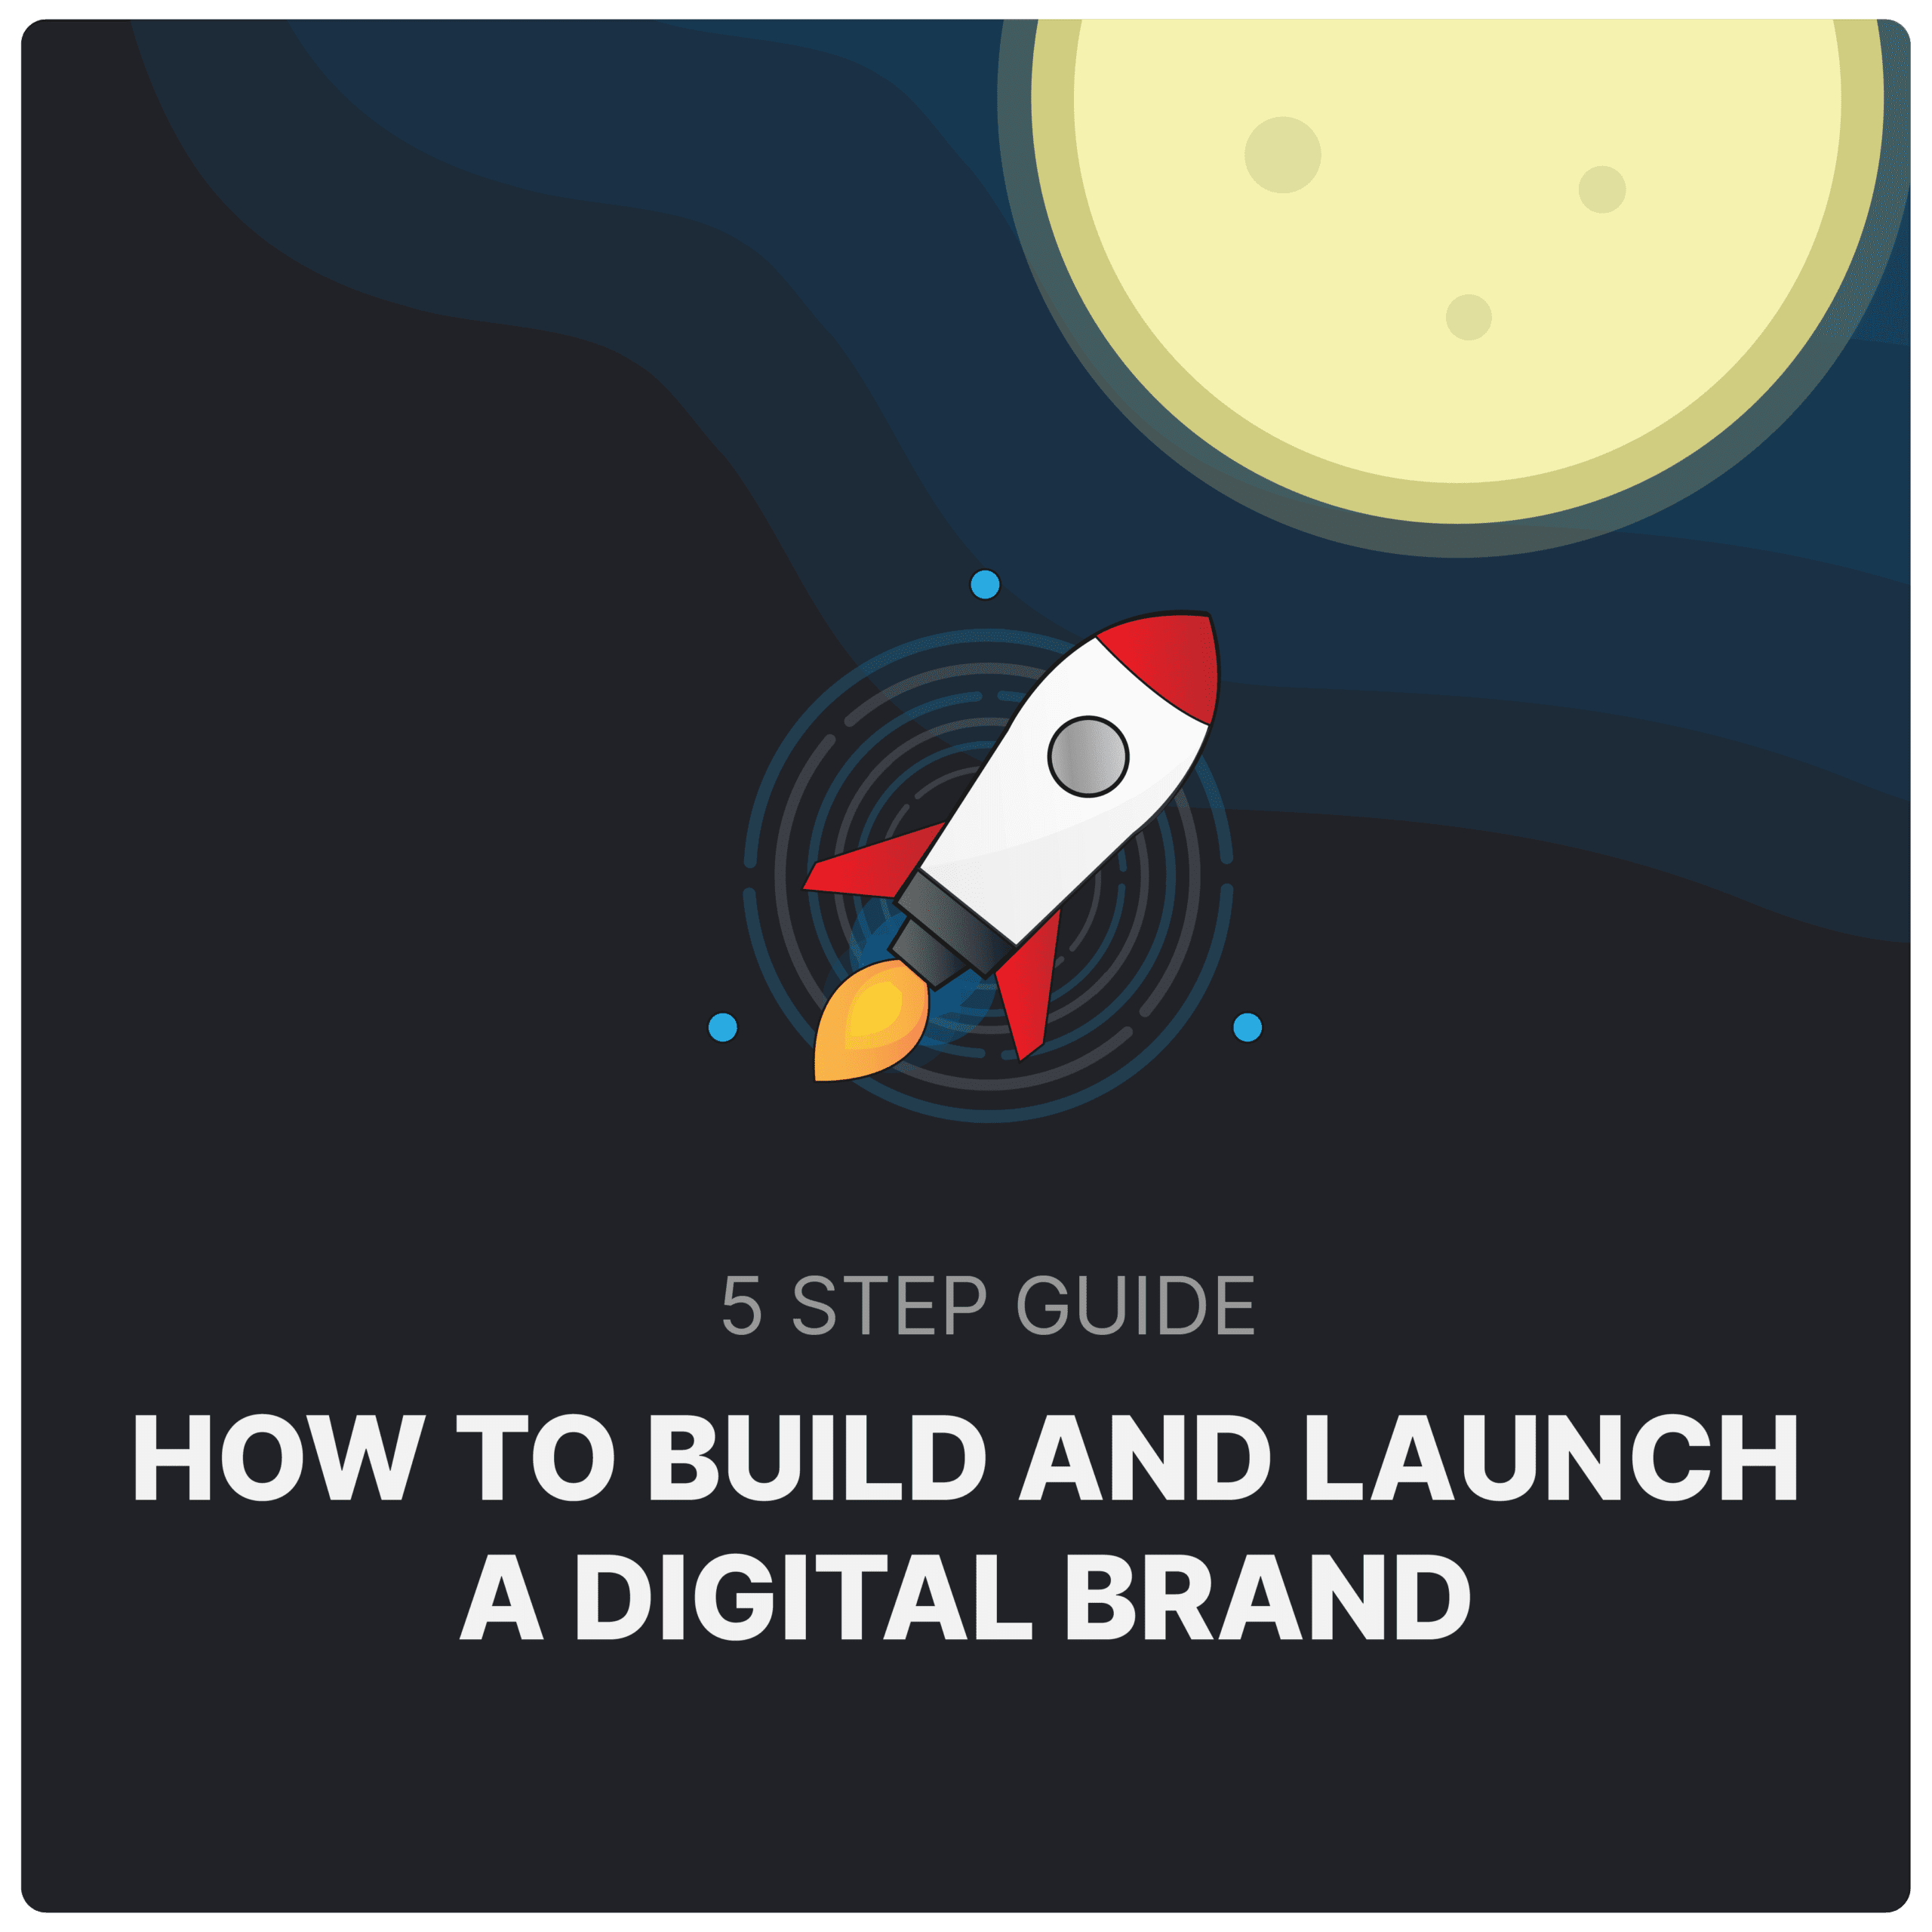 Start building your brand with the simple 5 step guide.